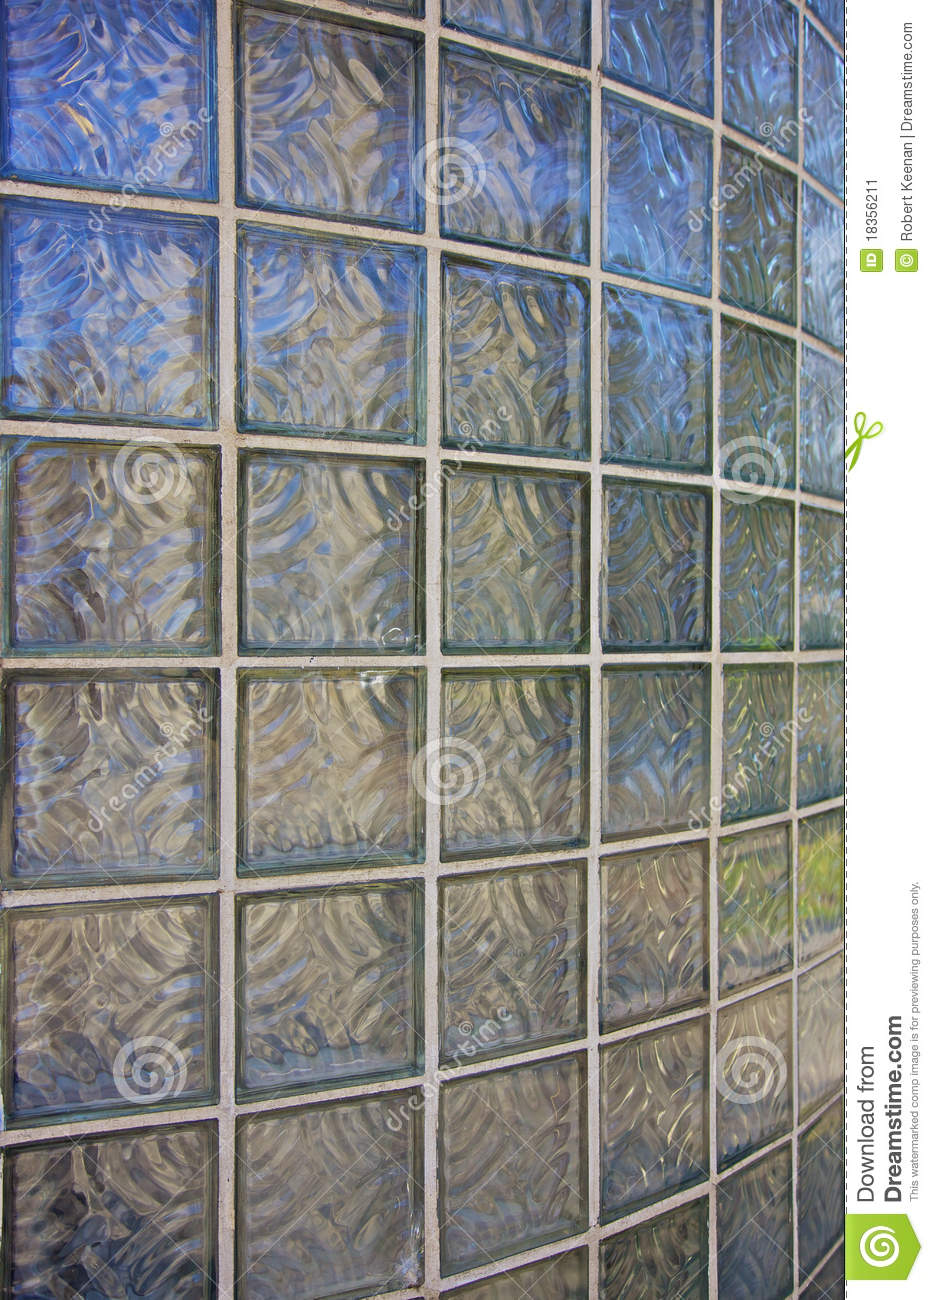 Curved glass brick wall stock image image 18356211 - Glass bricks designs walls ...